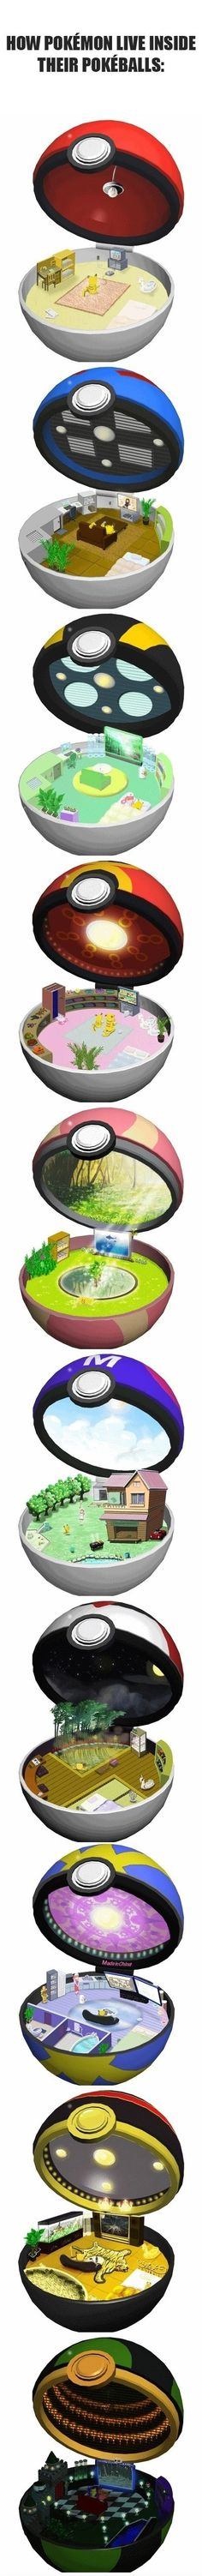 Finally, this actually makes sense. The Luxury Ball is my favorite! What's yours? Comment below!